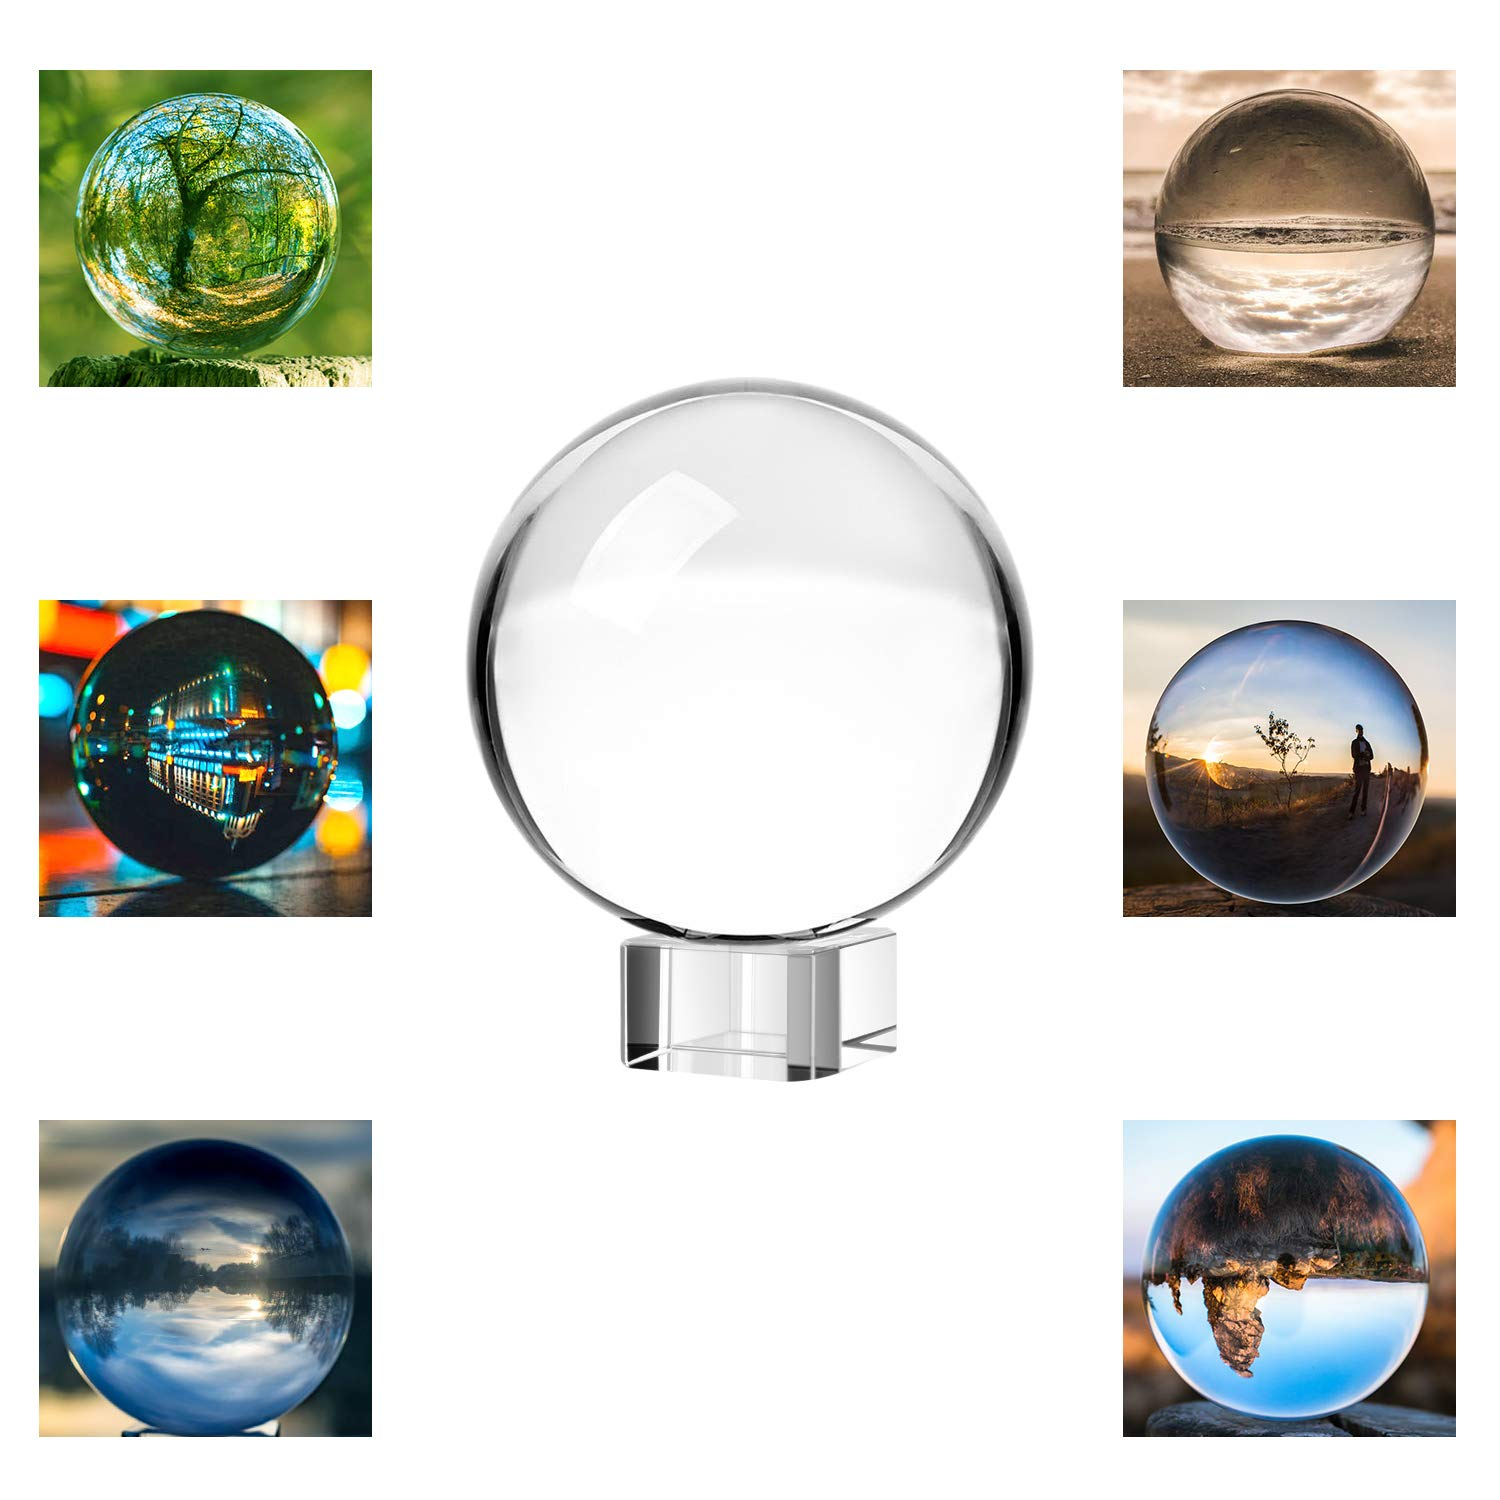 Neewer 100mm/3.94inch Clear Crystal Ball Globe with a Crystal Stand for Feng Shui/Divination or Wedding/Home/Office Decoration by Neewer